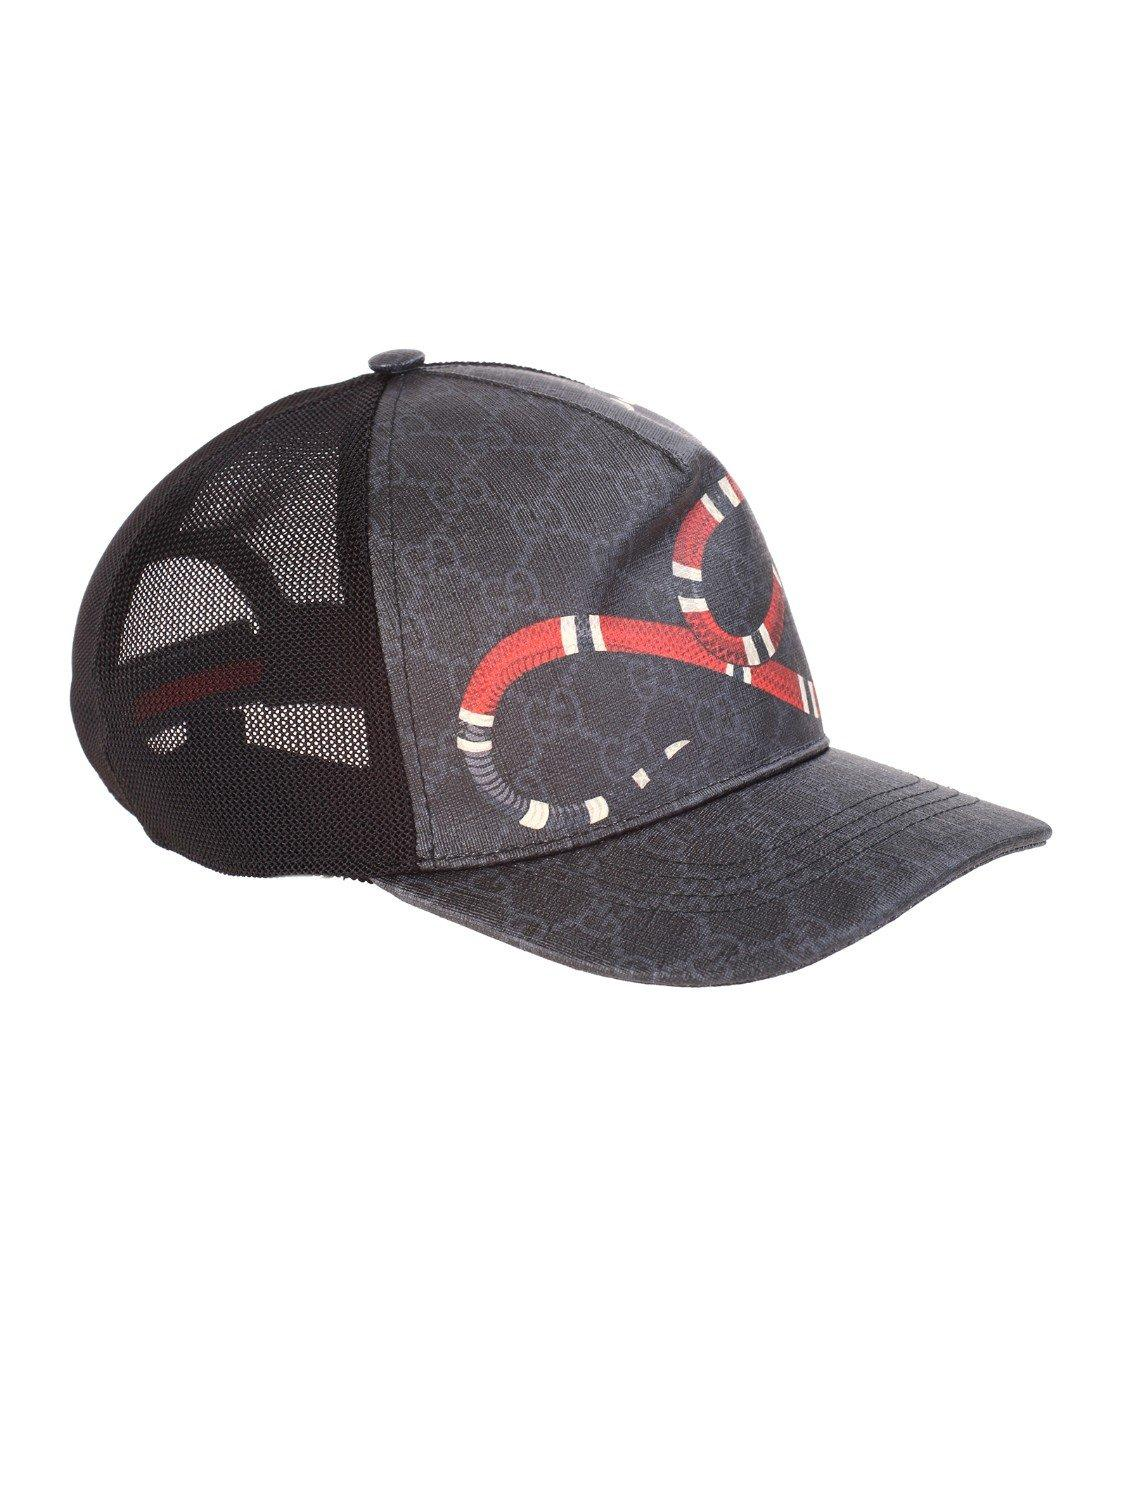 5ed17f895 Gucci Baseball Cap In Gg Supreme Fabric With Kingsnake Print in Black for  Men - Lyst